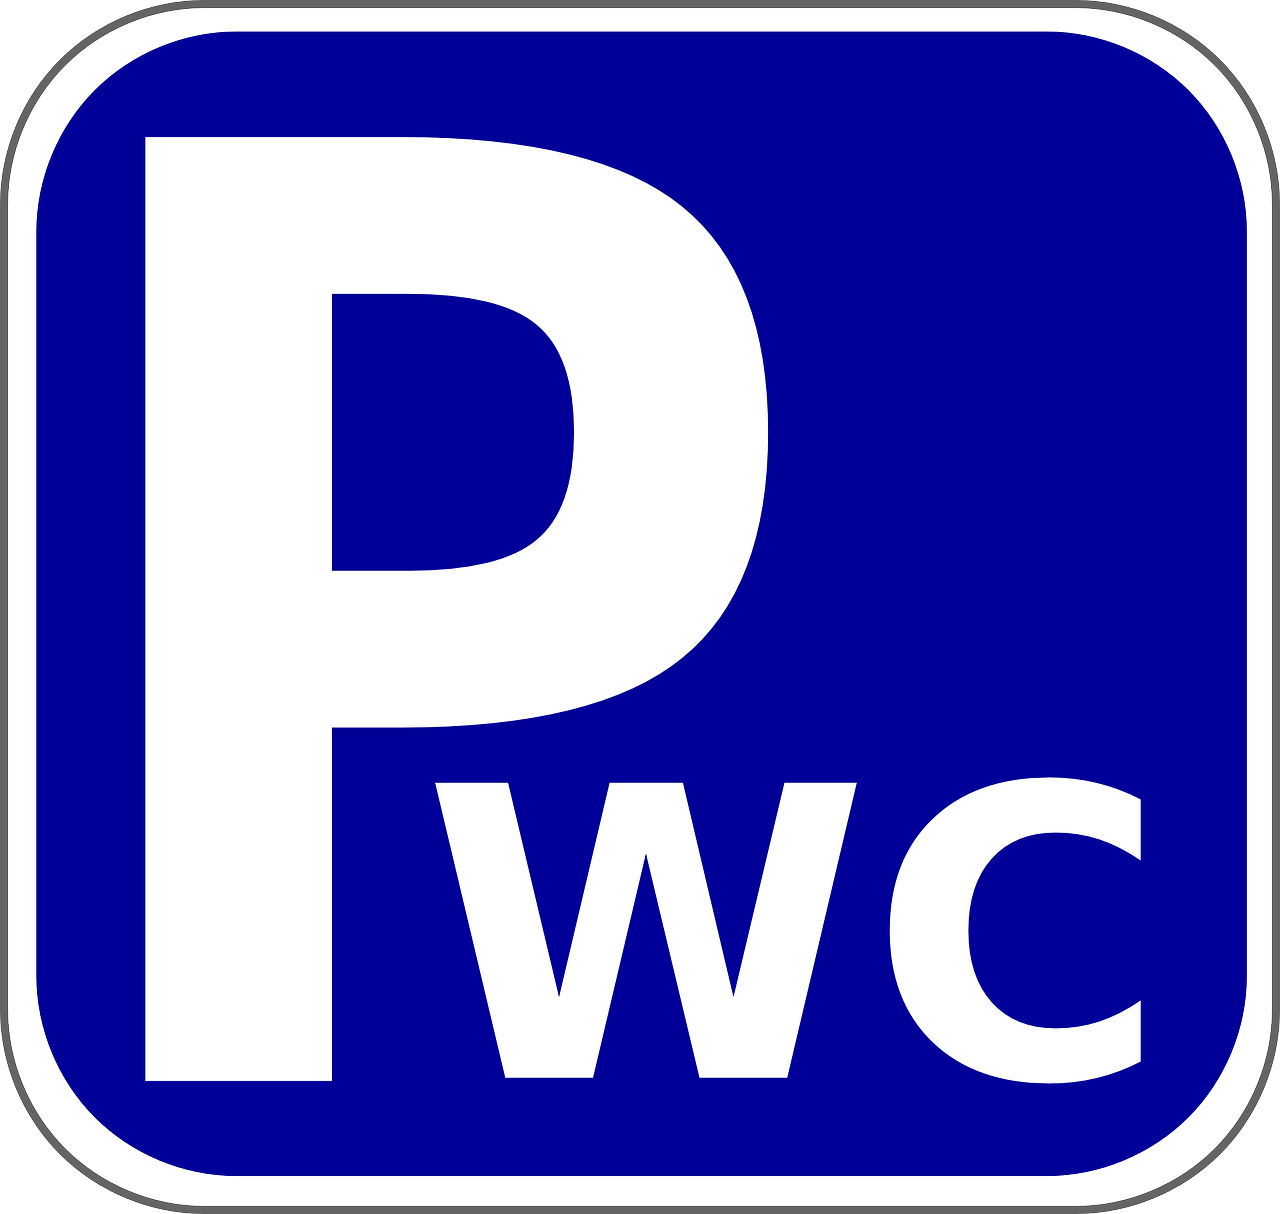 parking space traffic sign roadsign free photo